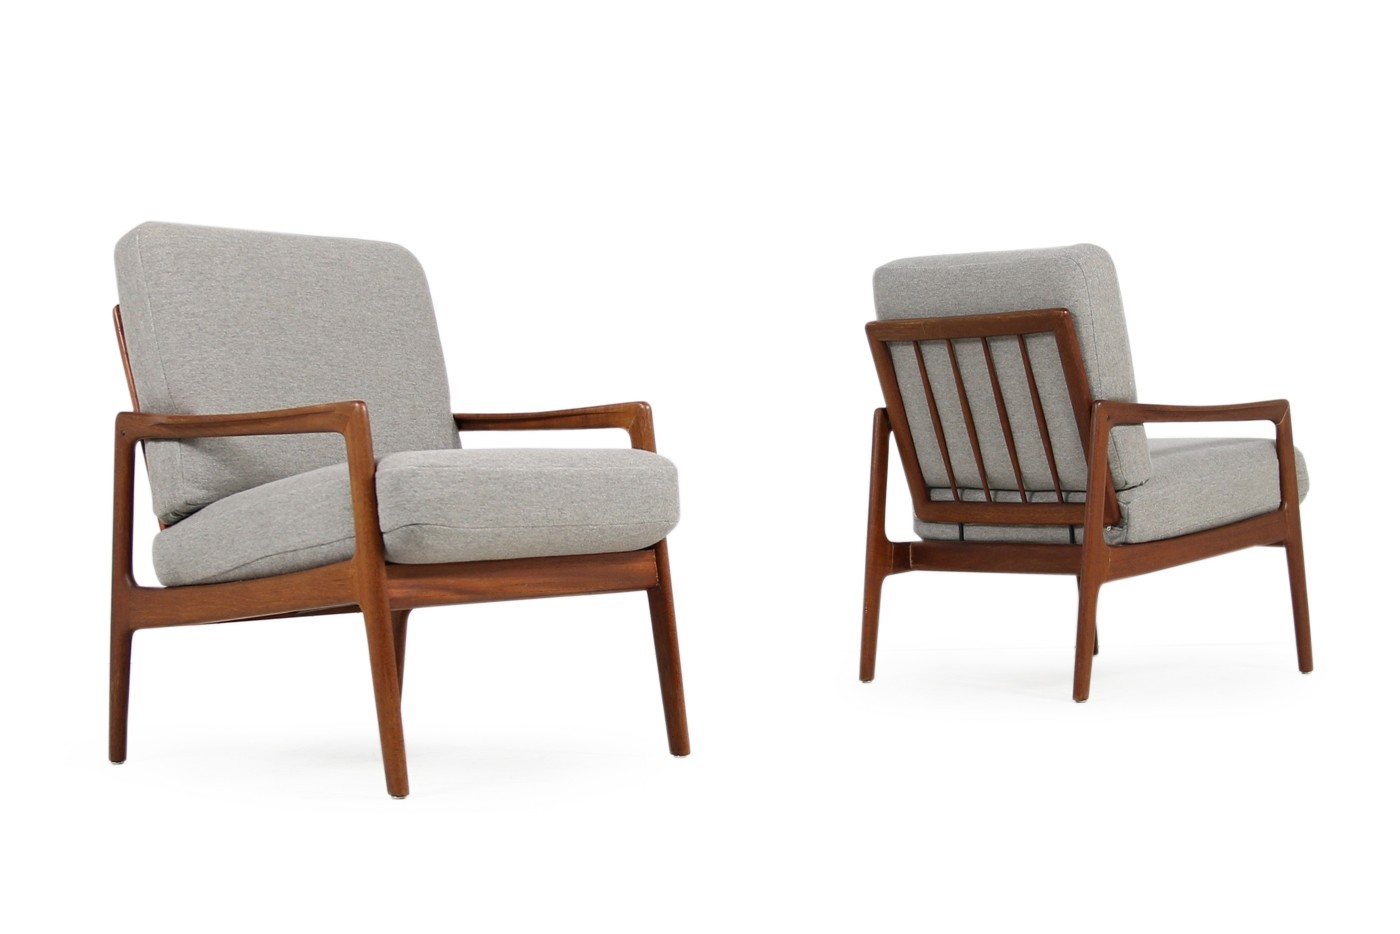 Danish Sessel Pair Of 1960s Danish Modern Teak Vintage Easy Chairs Objects